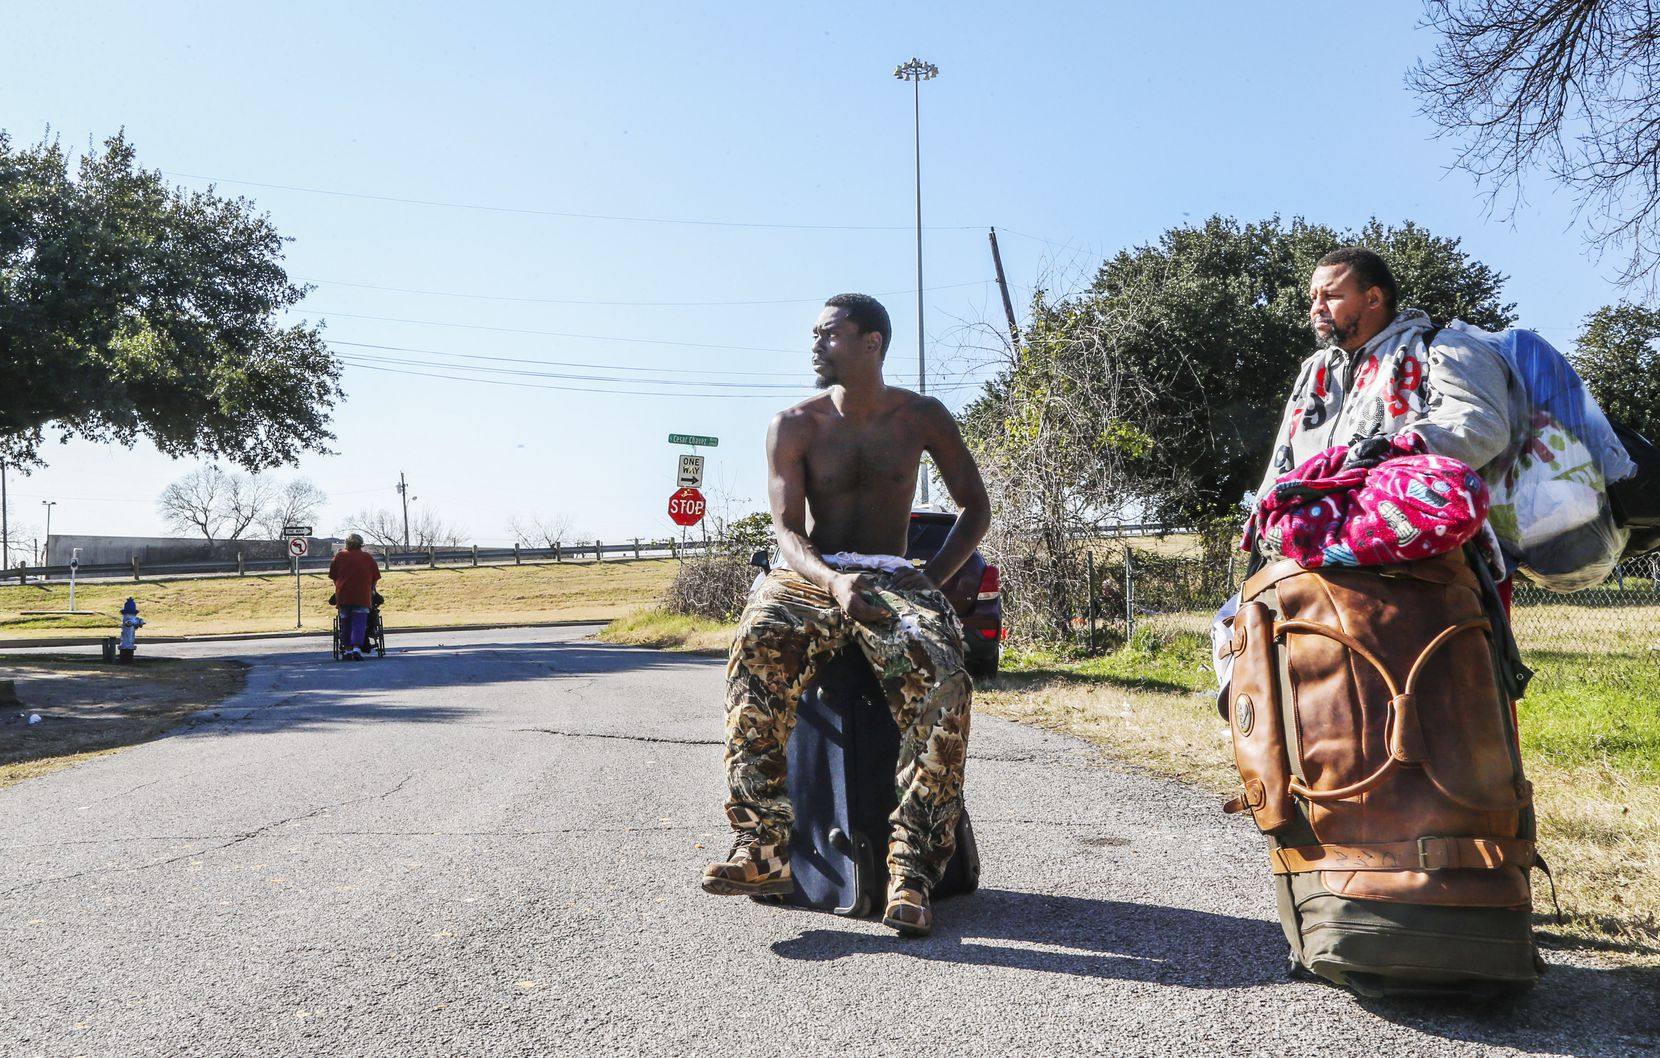 Chris Johnson (left) and Carlton Nalley, who are both homeless, carry their belongings after leaving  Our Calling in Dallas on Dec. 10, 2018.